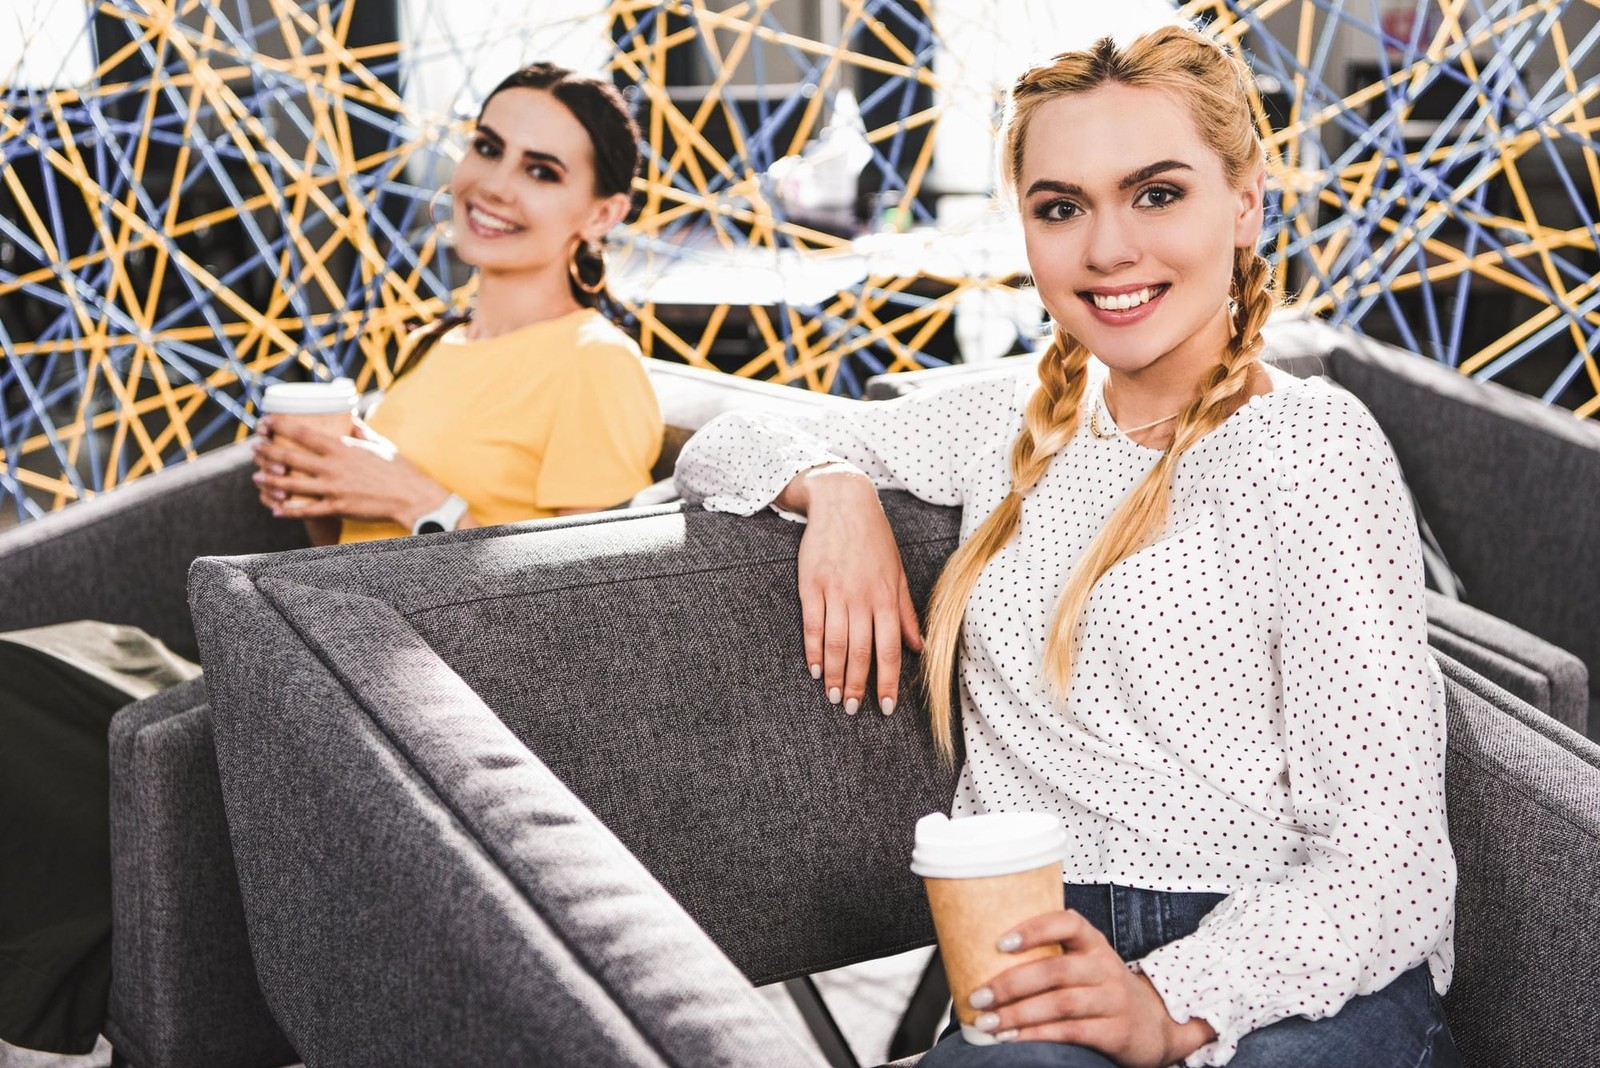 Young women having coffee in a modern office space.